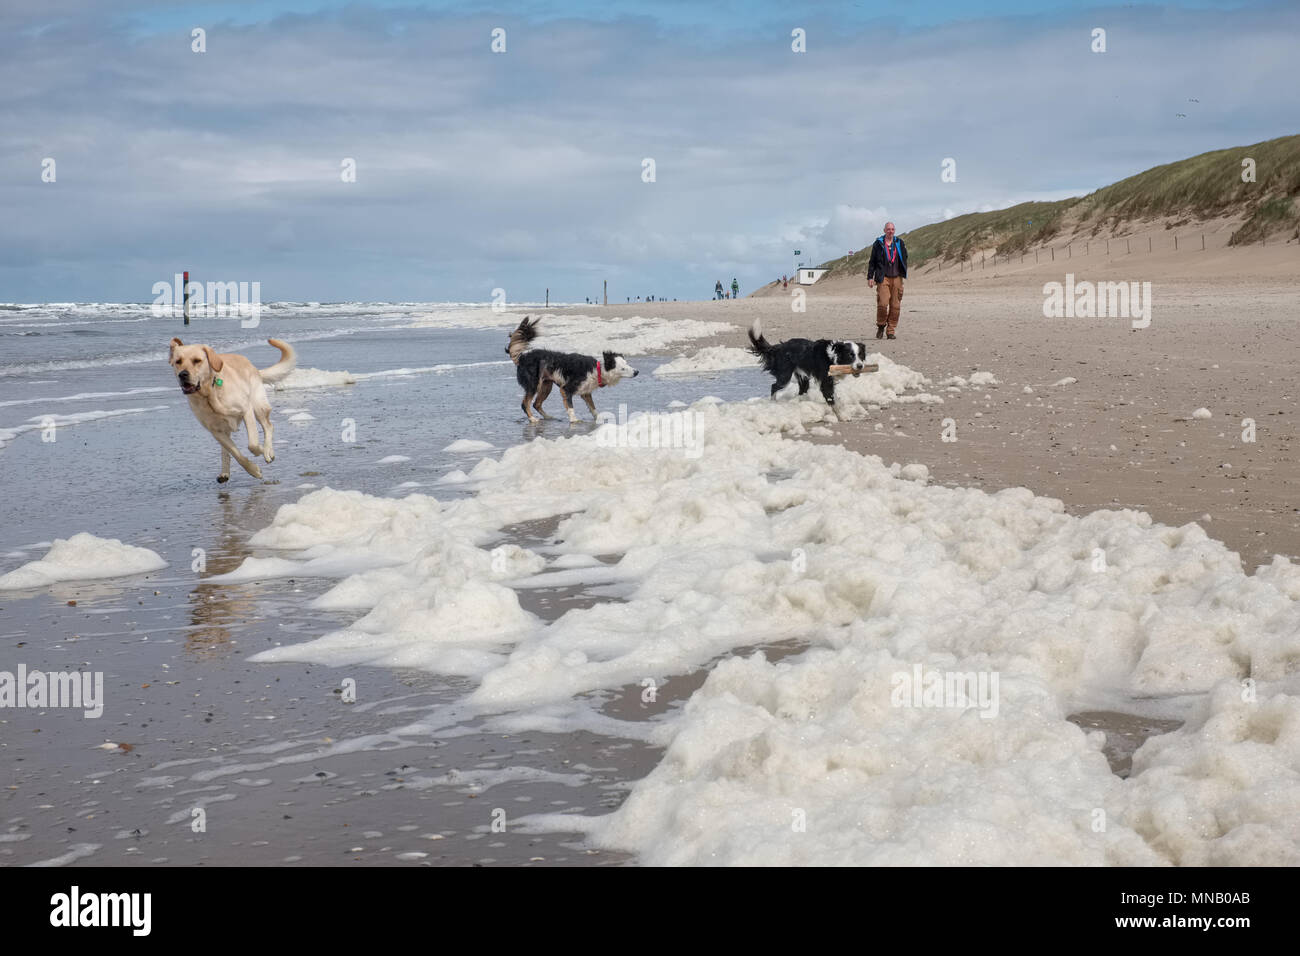 Three dogs playing on a beach covered by Algae, Sunday 15 May 2016, Texel, the Netherlands. Stock Photo